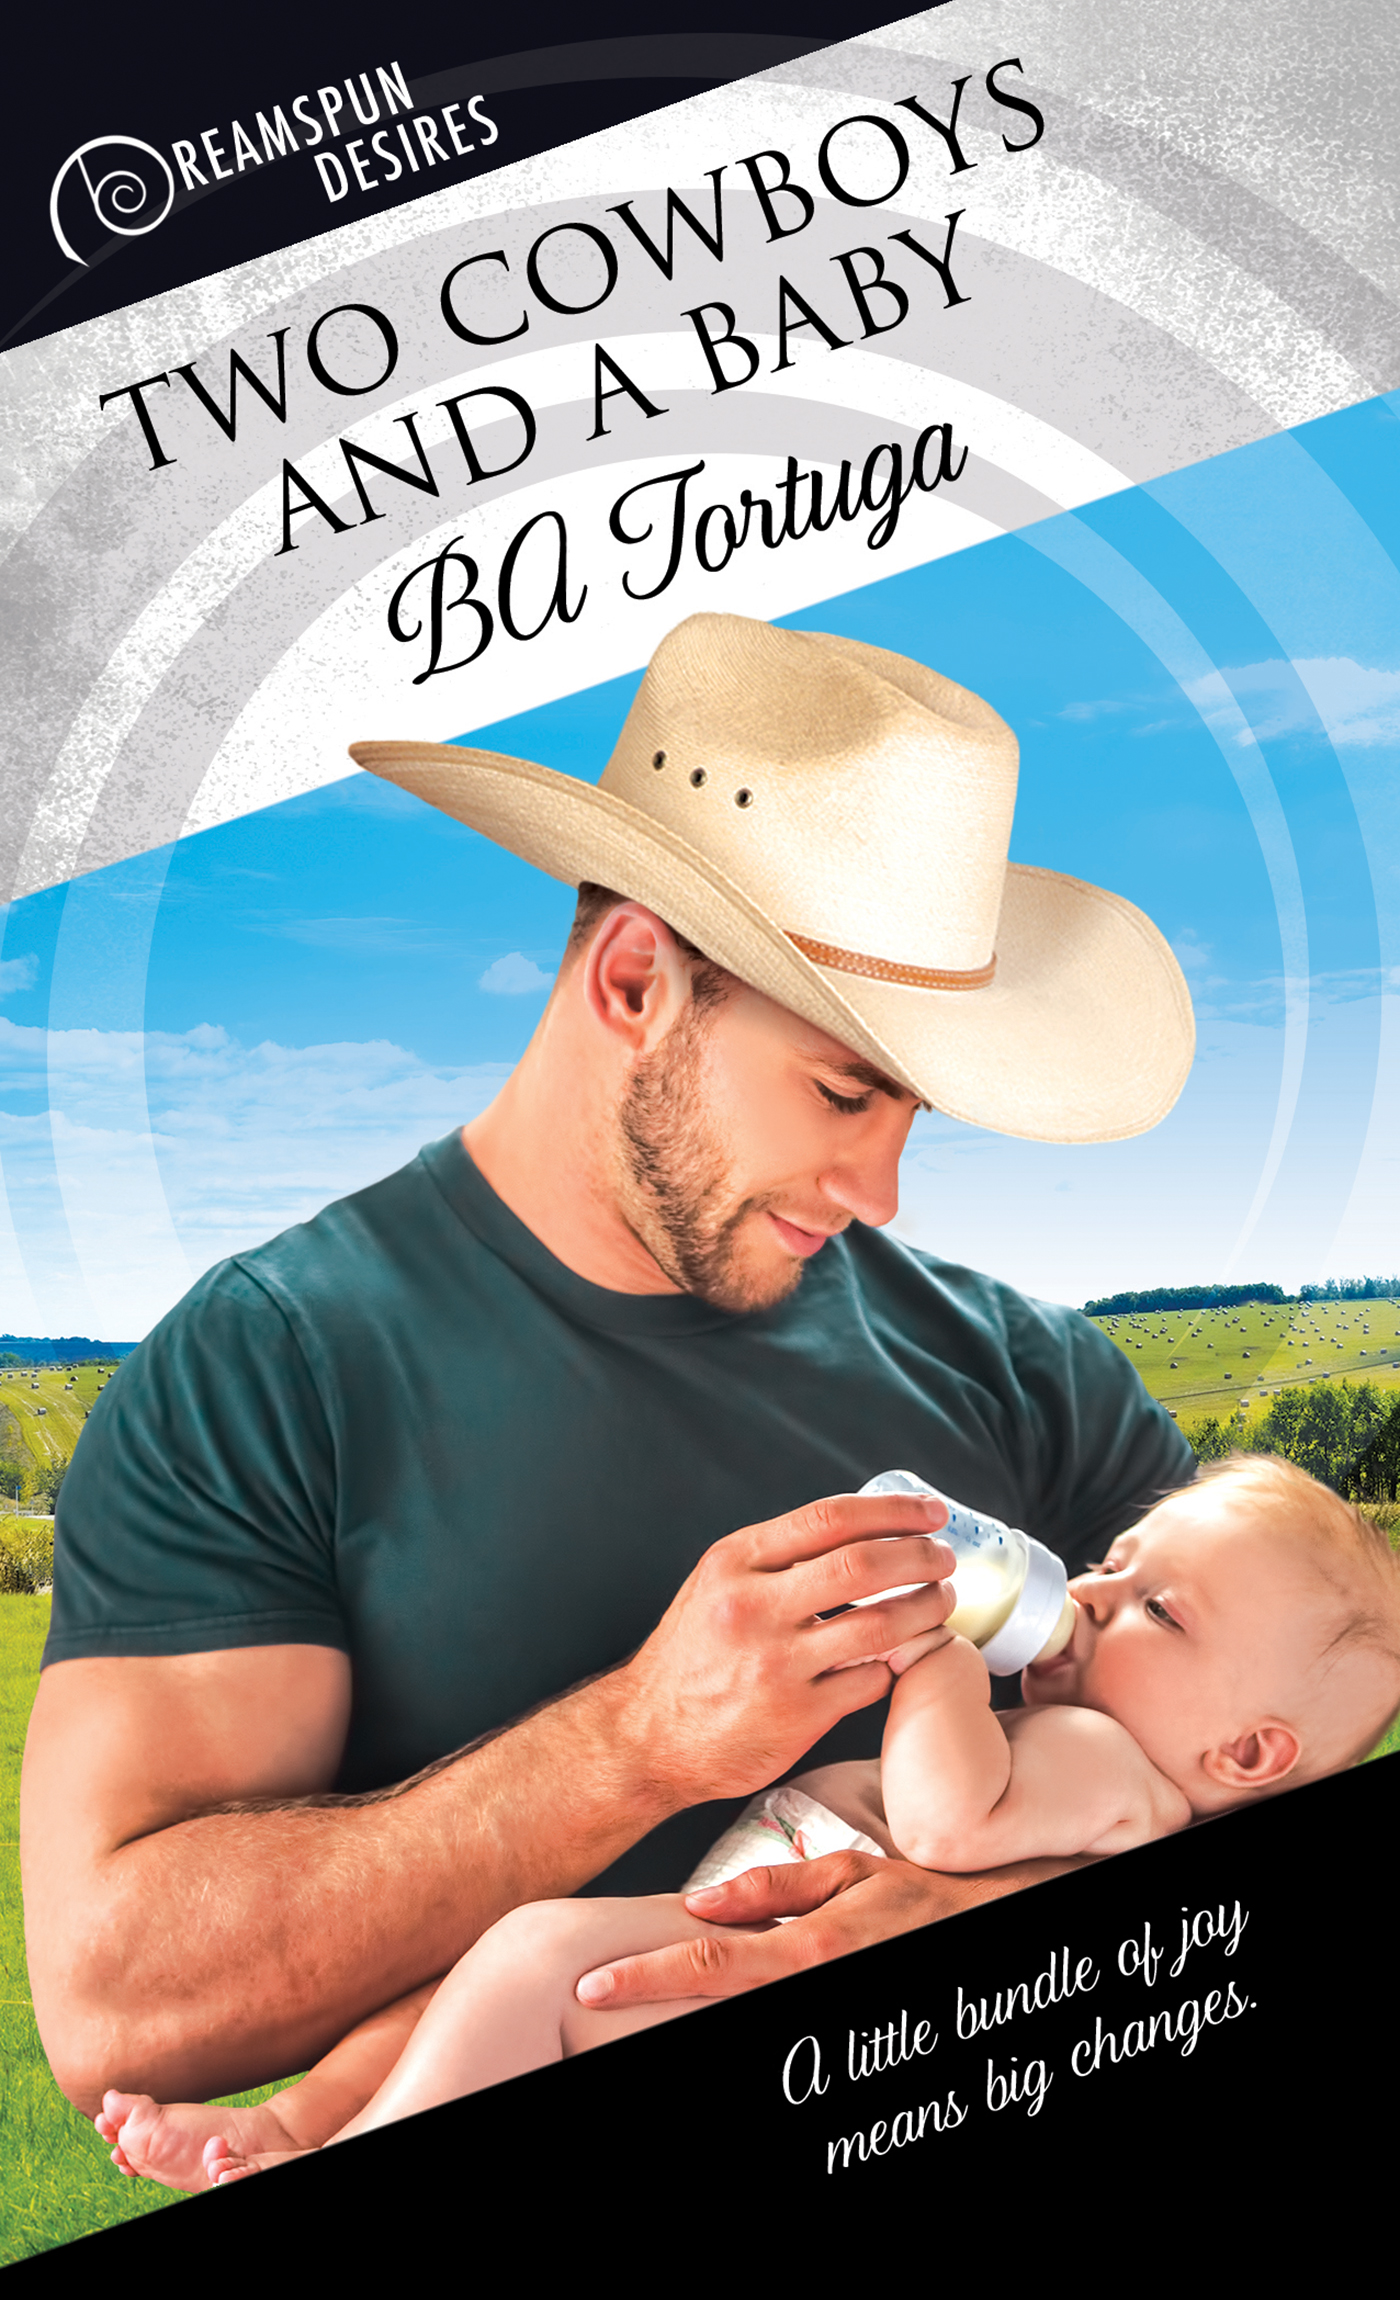 Guest Post and Giveaway: Two Cowboys and a Baby by B.A. Tortuga